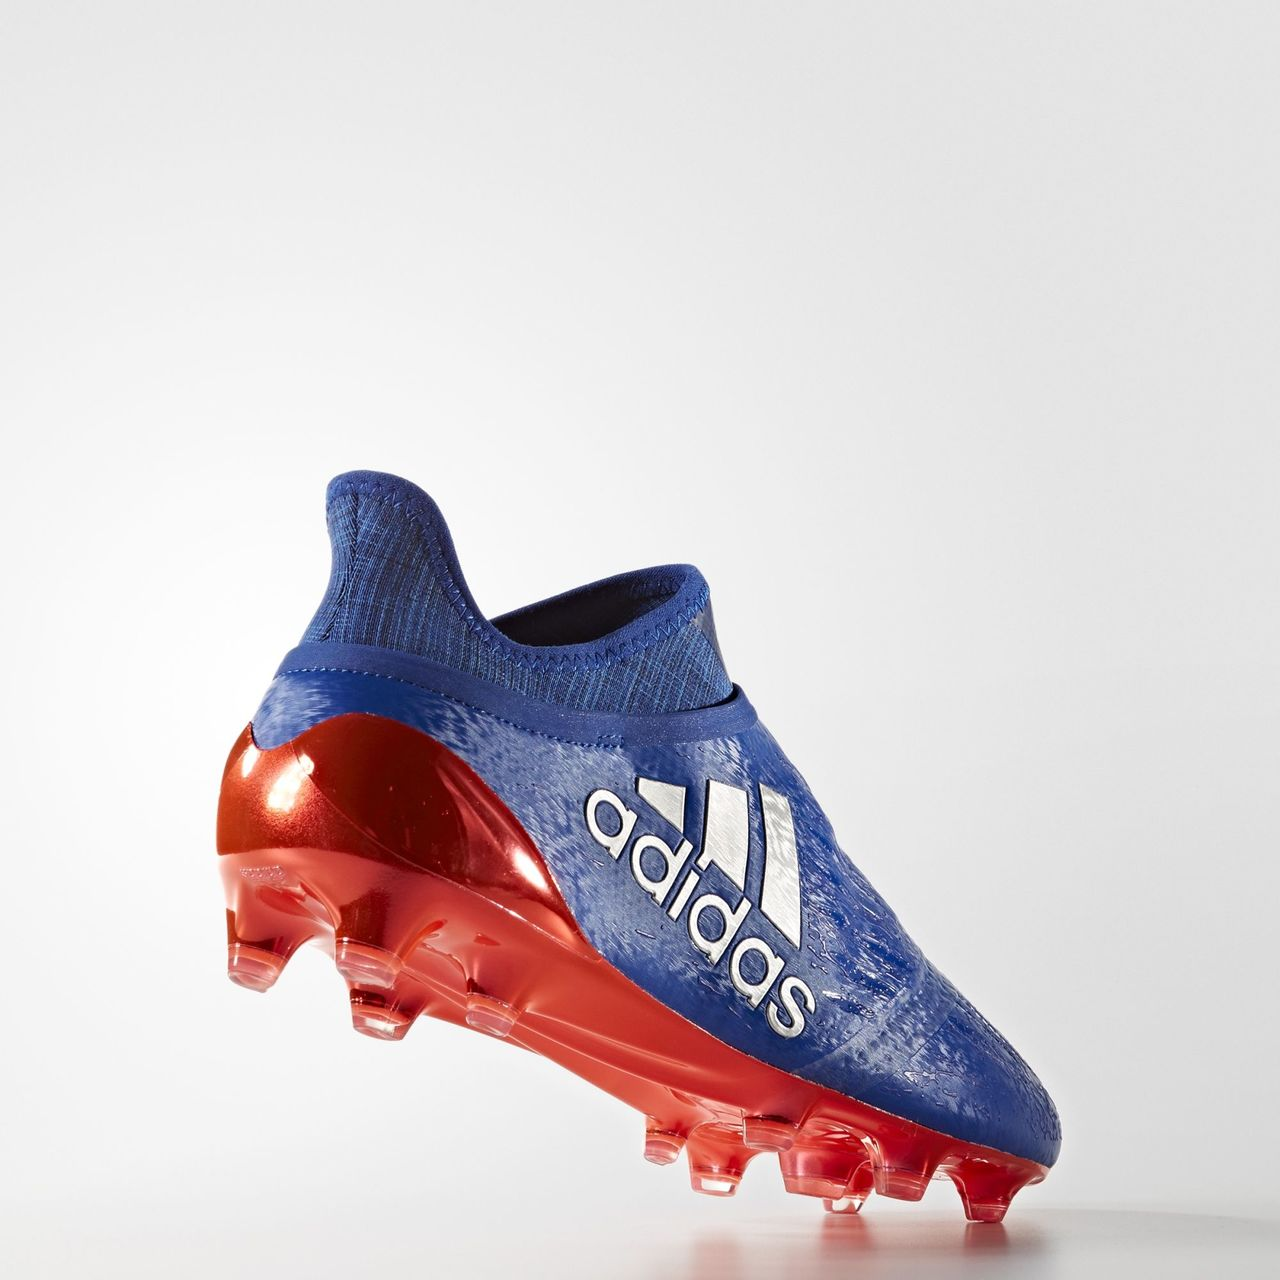 1ad579ceb ... Click to enlarge image  adidas_x_16_purechaos_firm_ground_boots_collegiate_royal_solar_red_solar_red_e.jpg  ...